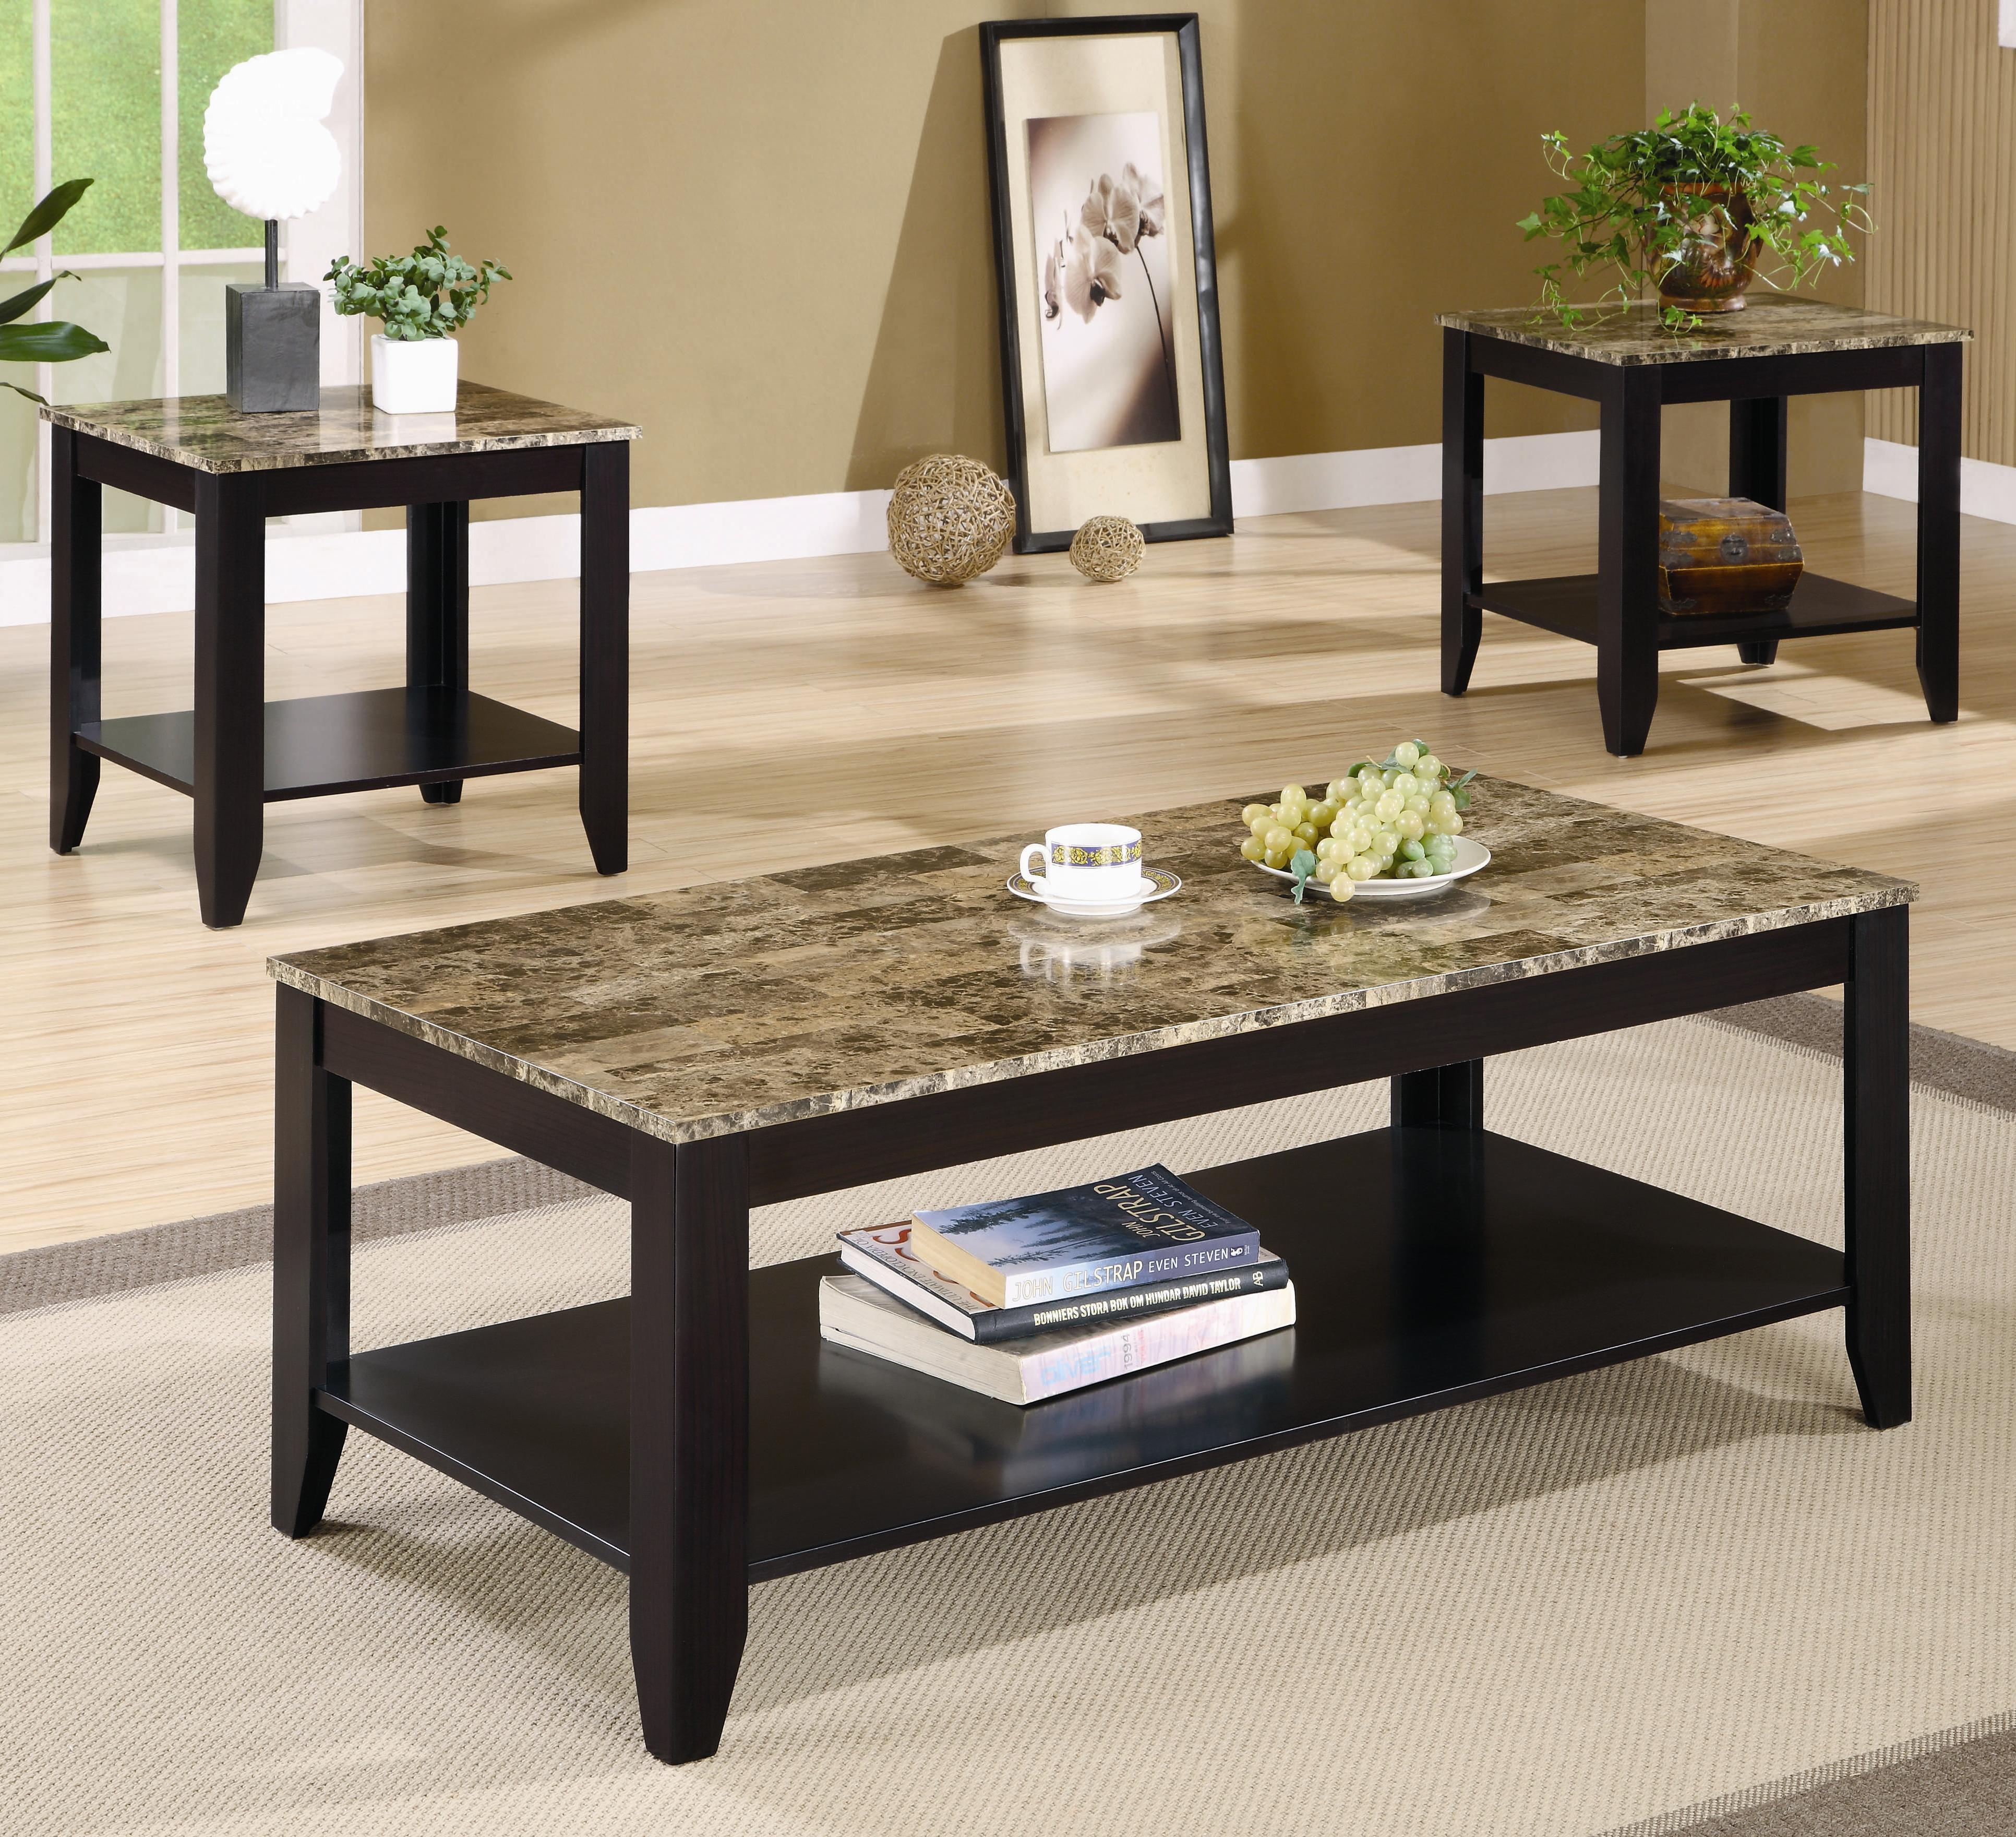 Table Set. Coffee Table. End Table & 3 Piece Occasional Table Set with Shelf and Marble Look Top